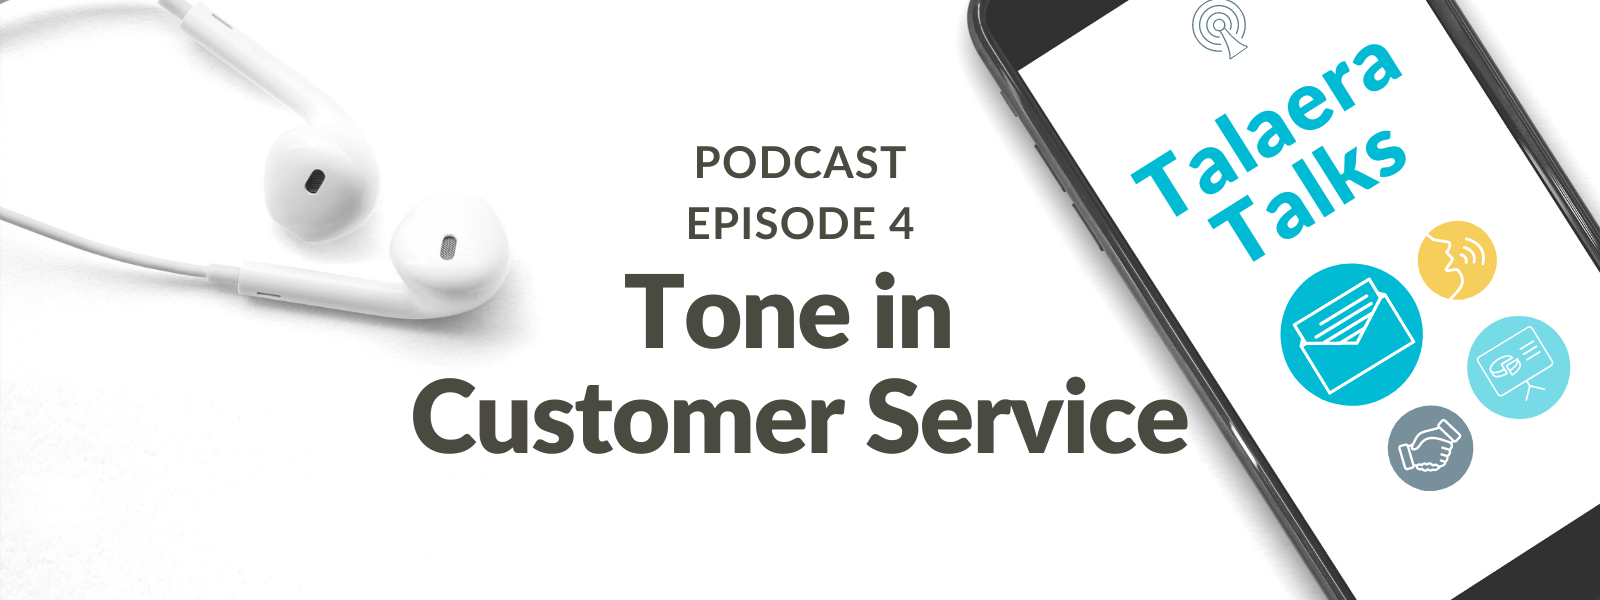 Tone in Customer Service - Business English Podcast Talaera Talks